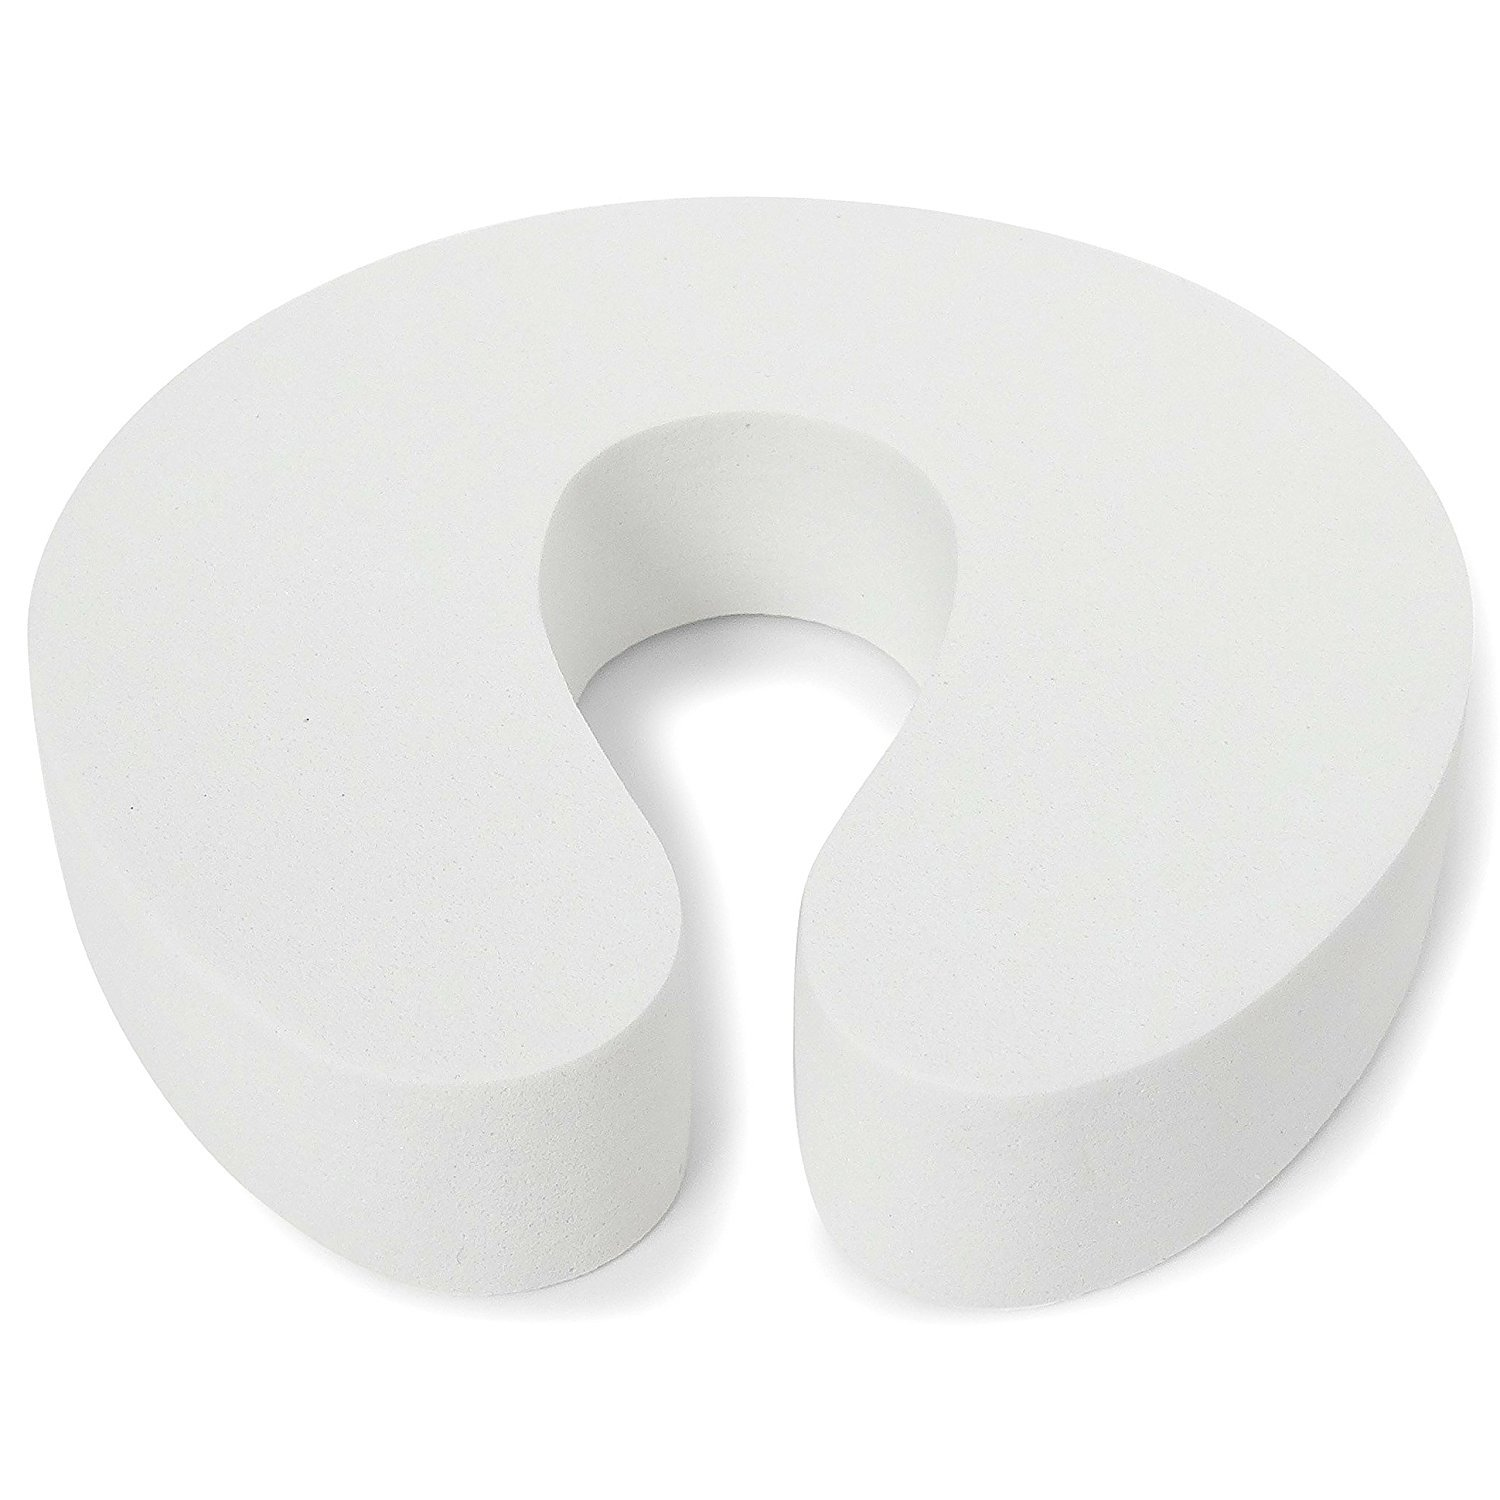 Deblan Safety Foam Door Stopper, Finger Pinch Guard for Child Proofing, Pack of 5, White